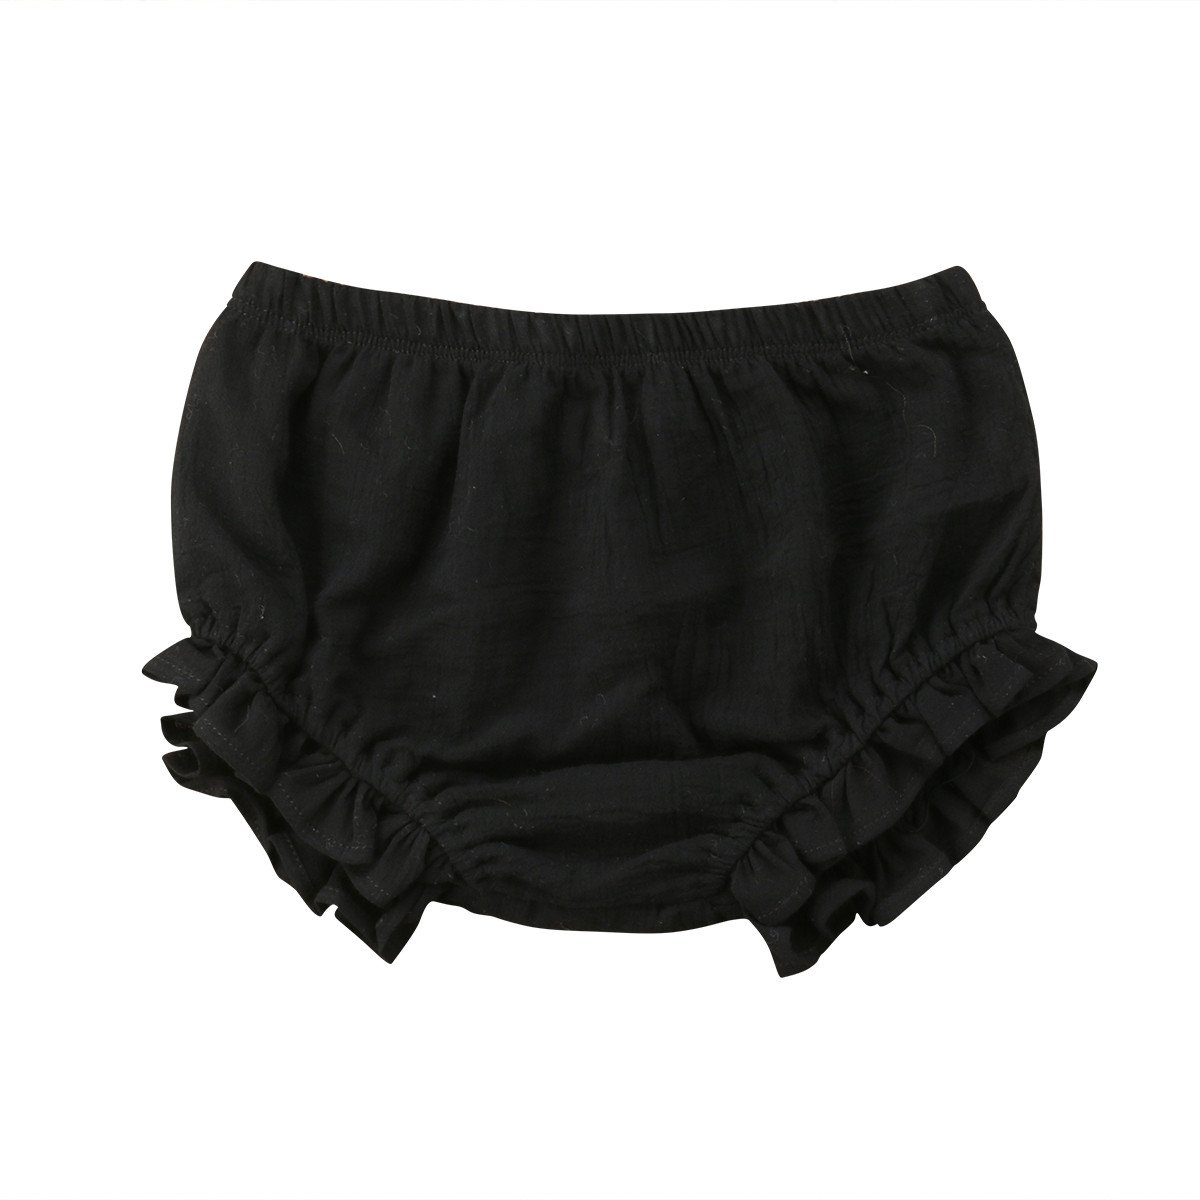 Mornbaby Baby Girl's Bloomers Cotton Ruffle Panty Diaper Covers Underwear Shorts Toddler Kids Girls (Black, 2-3 Years)